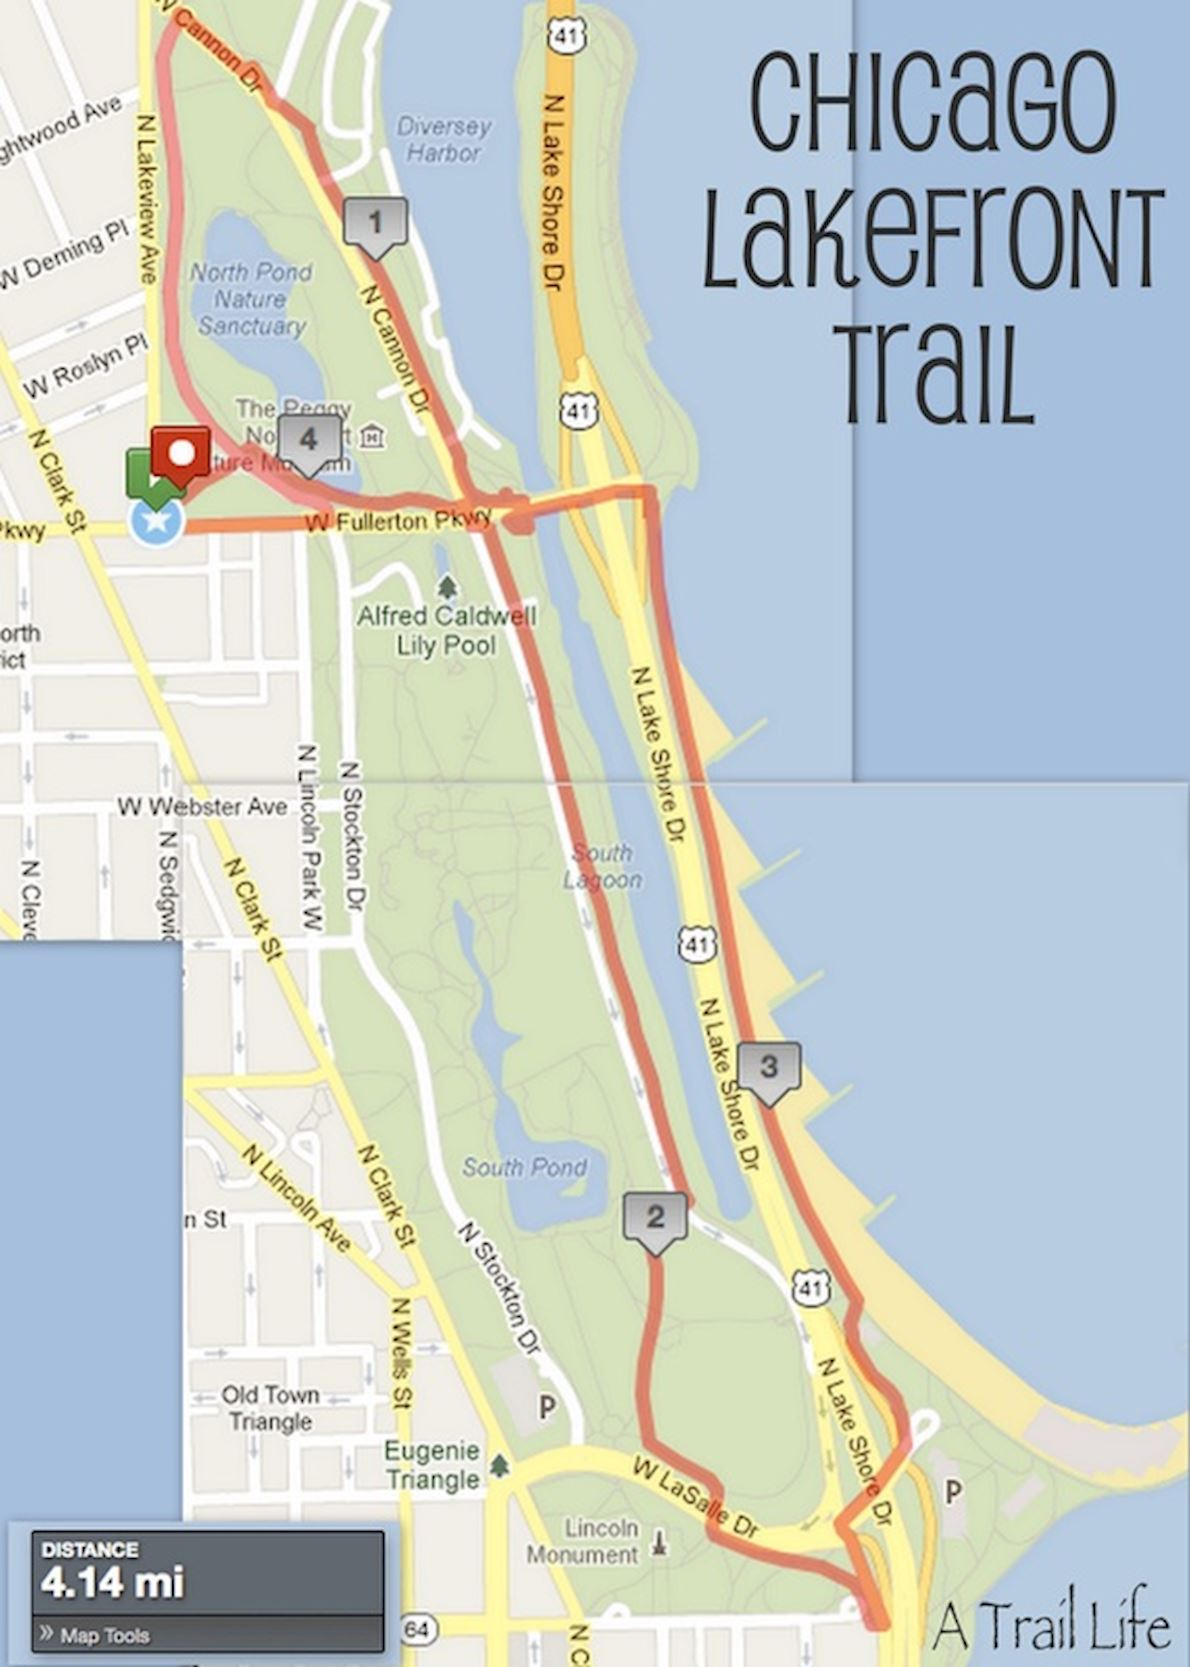 Chicago Lakefront 50K George Cheung Memorial Race 路线图